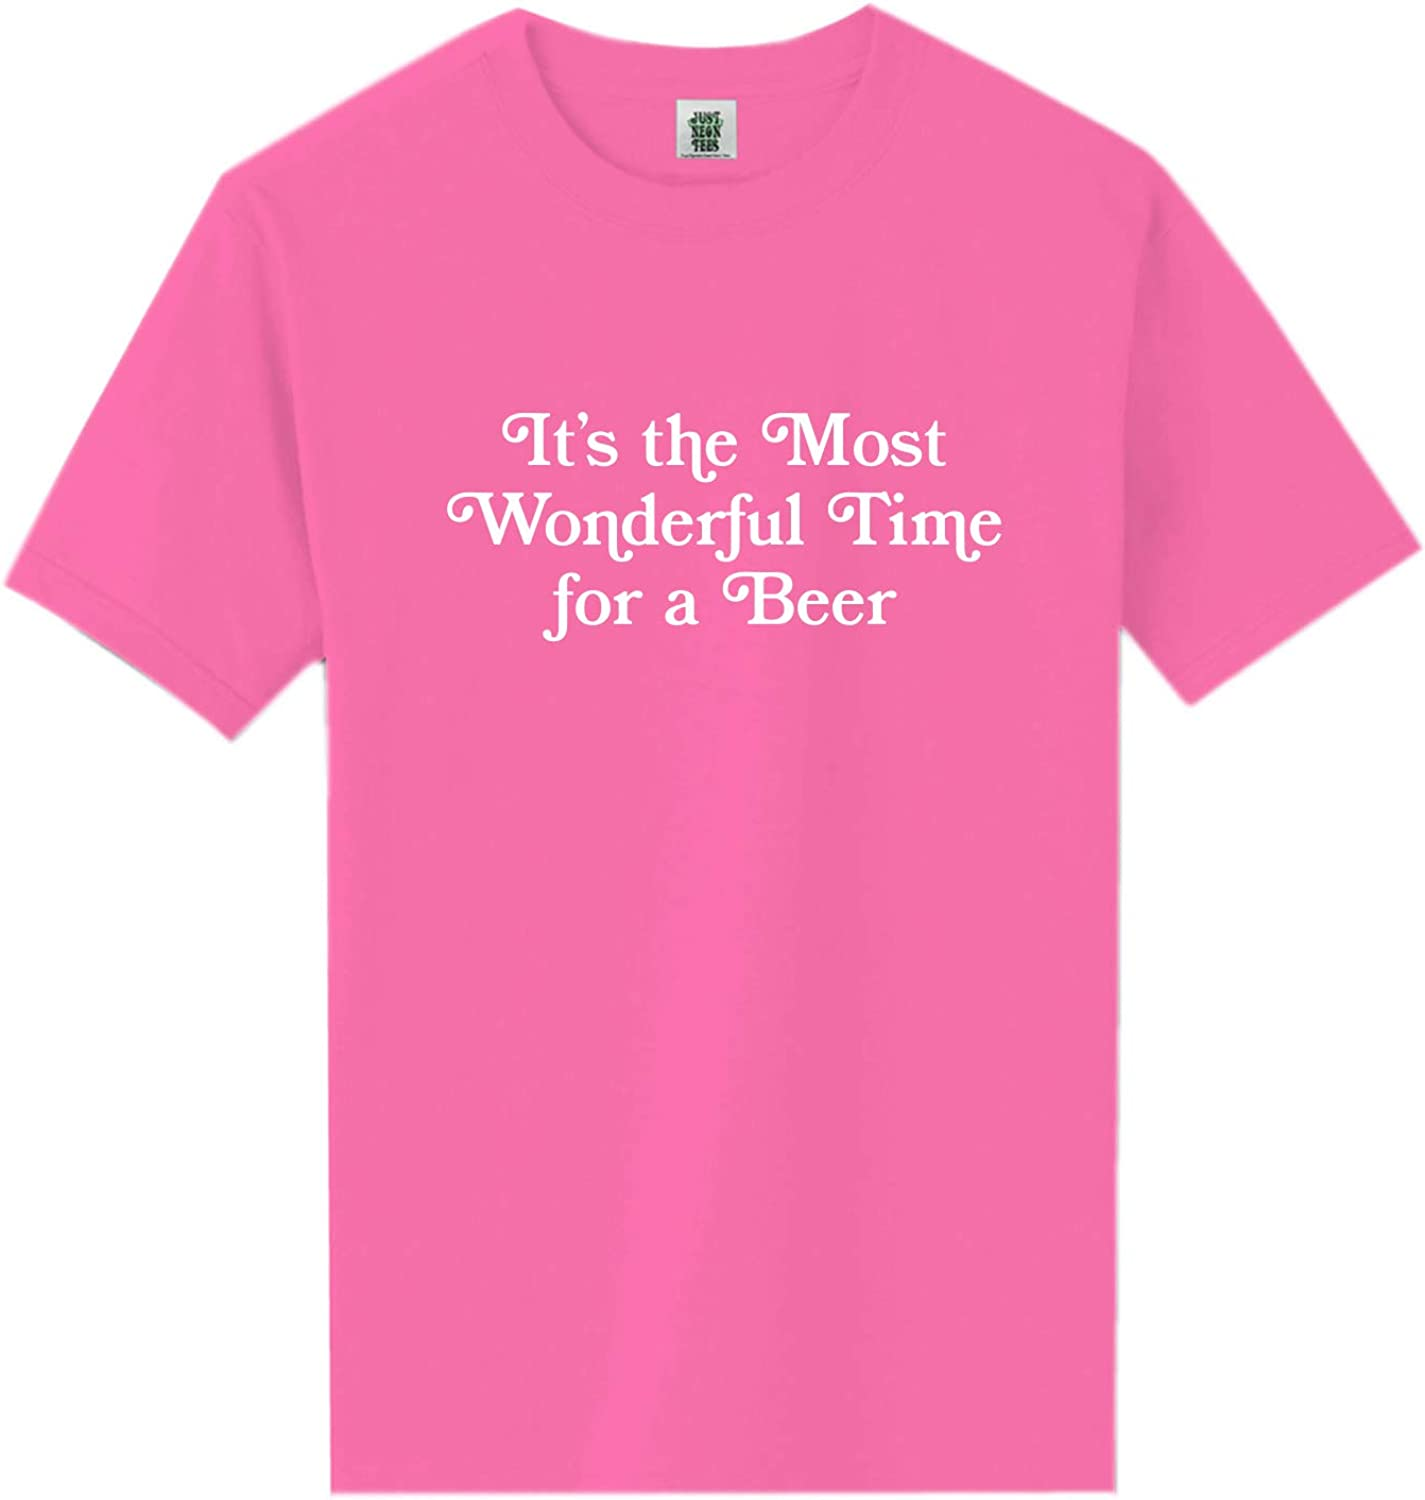 It's The Most Wonderful Time Neon Pink Short Sleeve T-Shirt - XX-Large